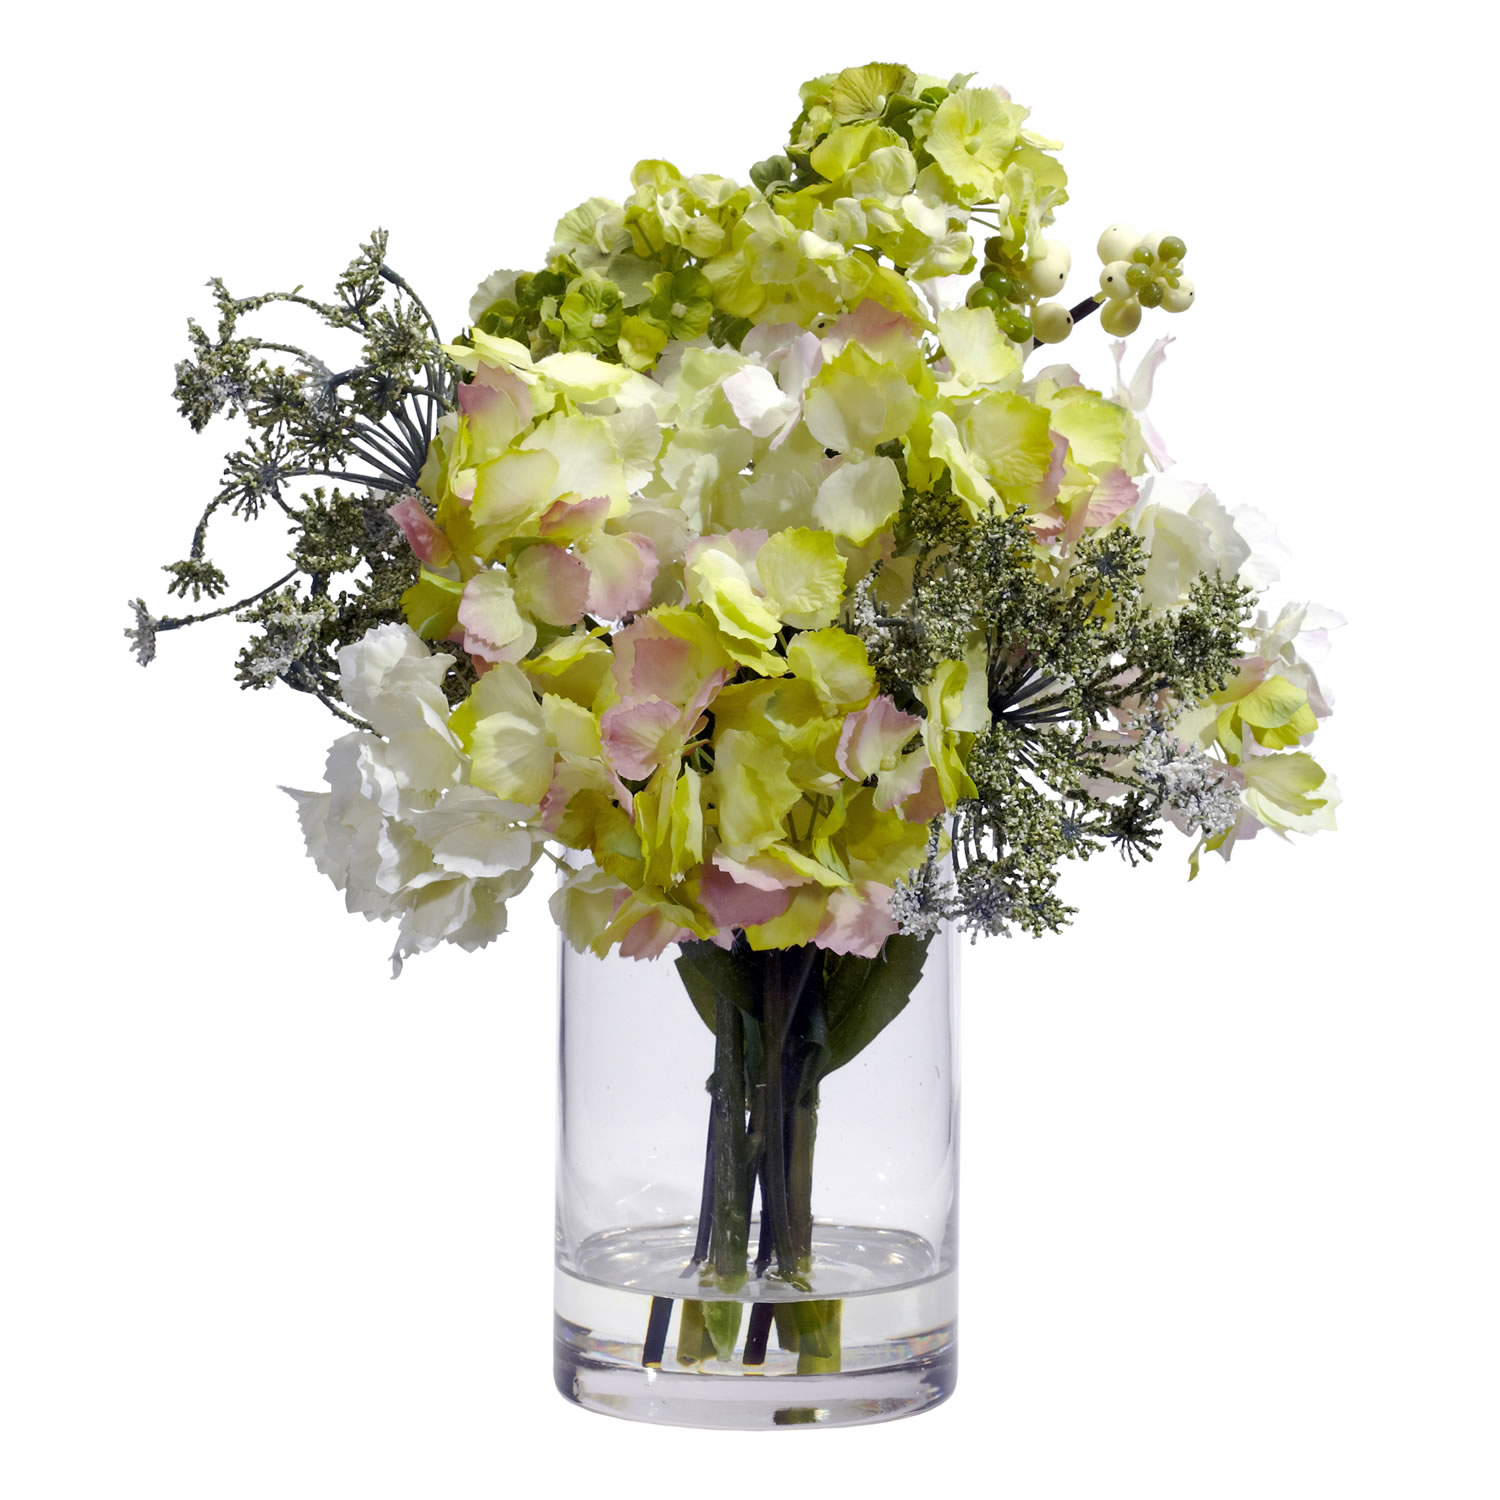 Hydrangea silk flower arrangement silk specialties hydrangea silk flower arrangement mightylinksfo